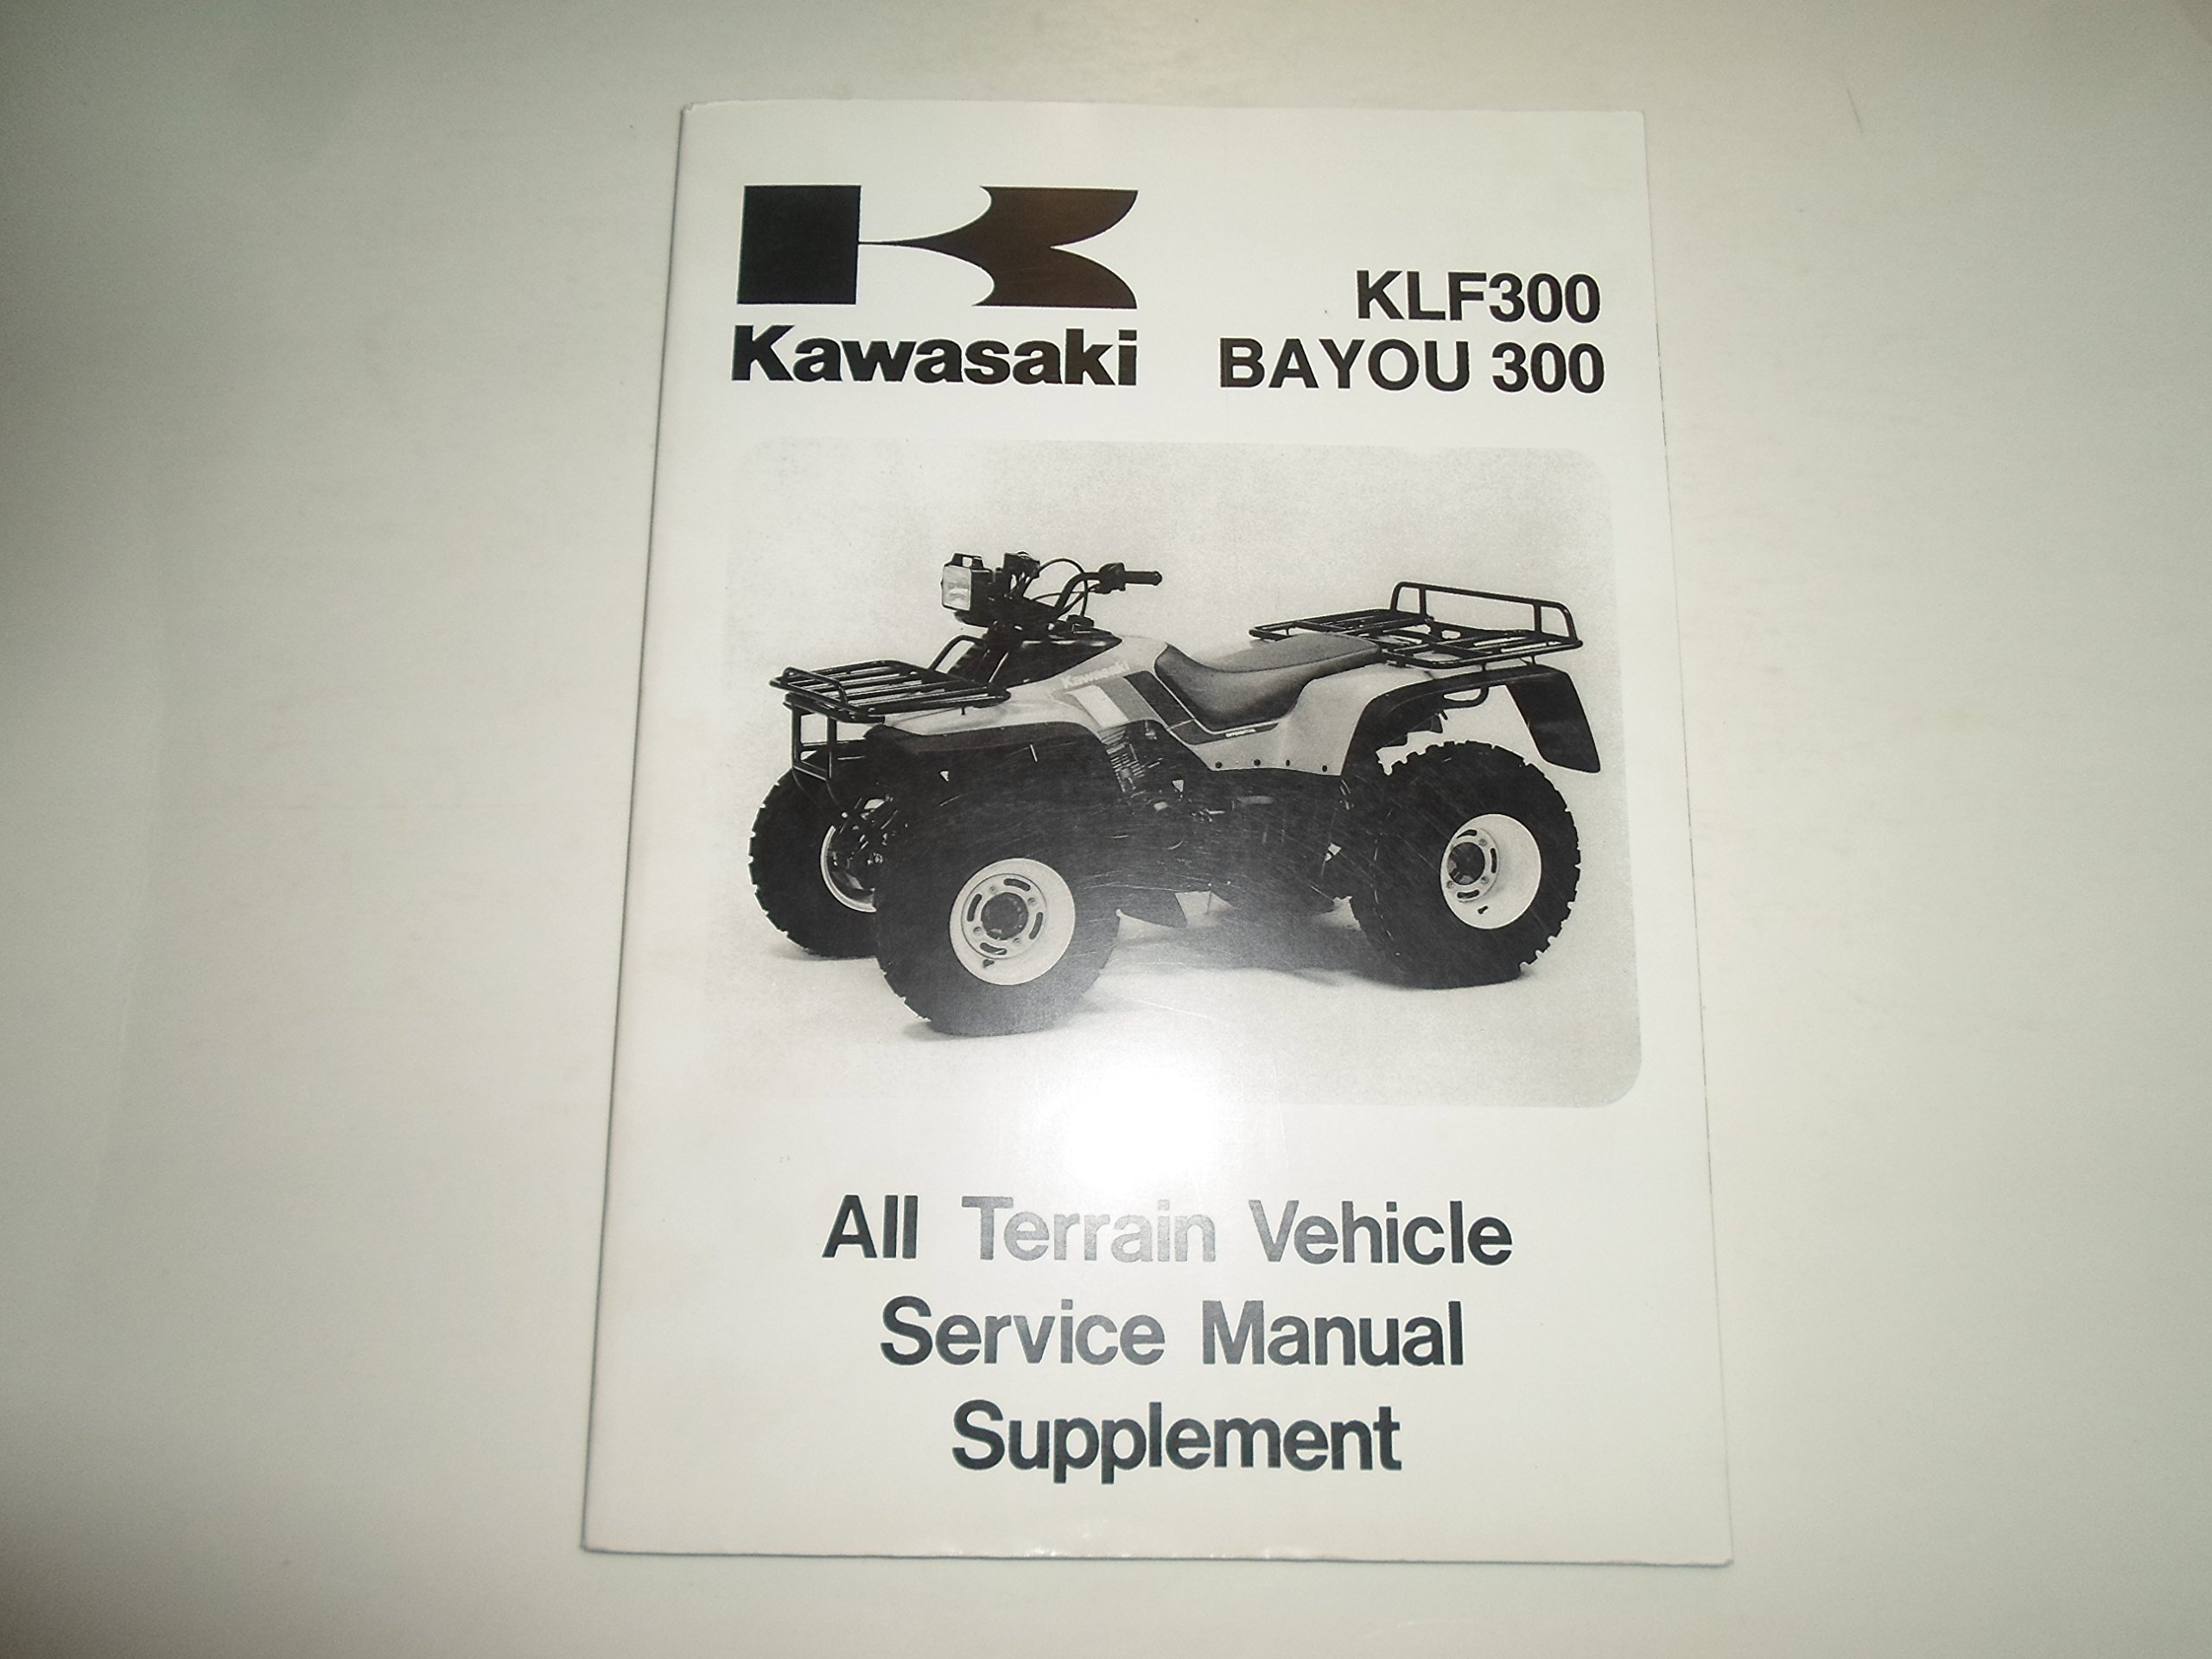 1988 2006 kawasaki klf300 bayou 300 atv service manual supplement rh amazon  com Kawasaki KLF 300 Kawasaki KLF 300 4x4